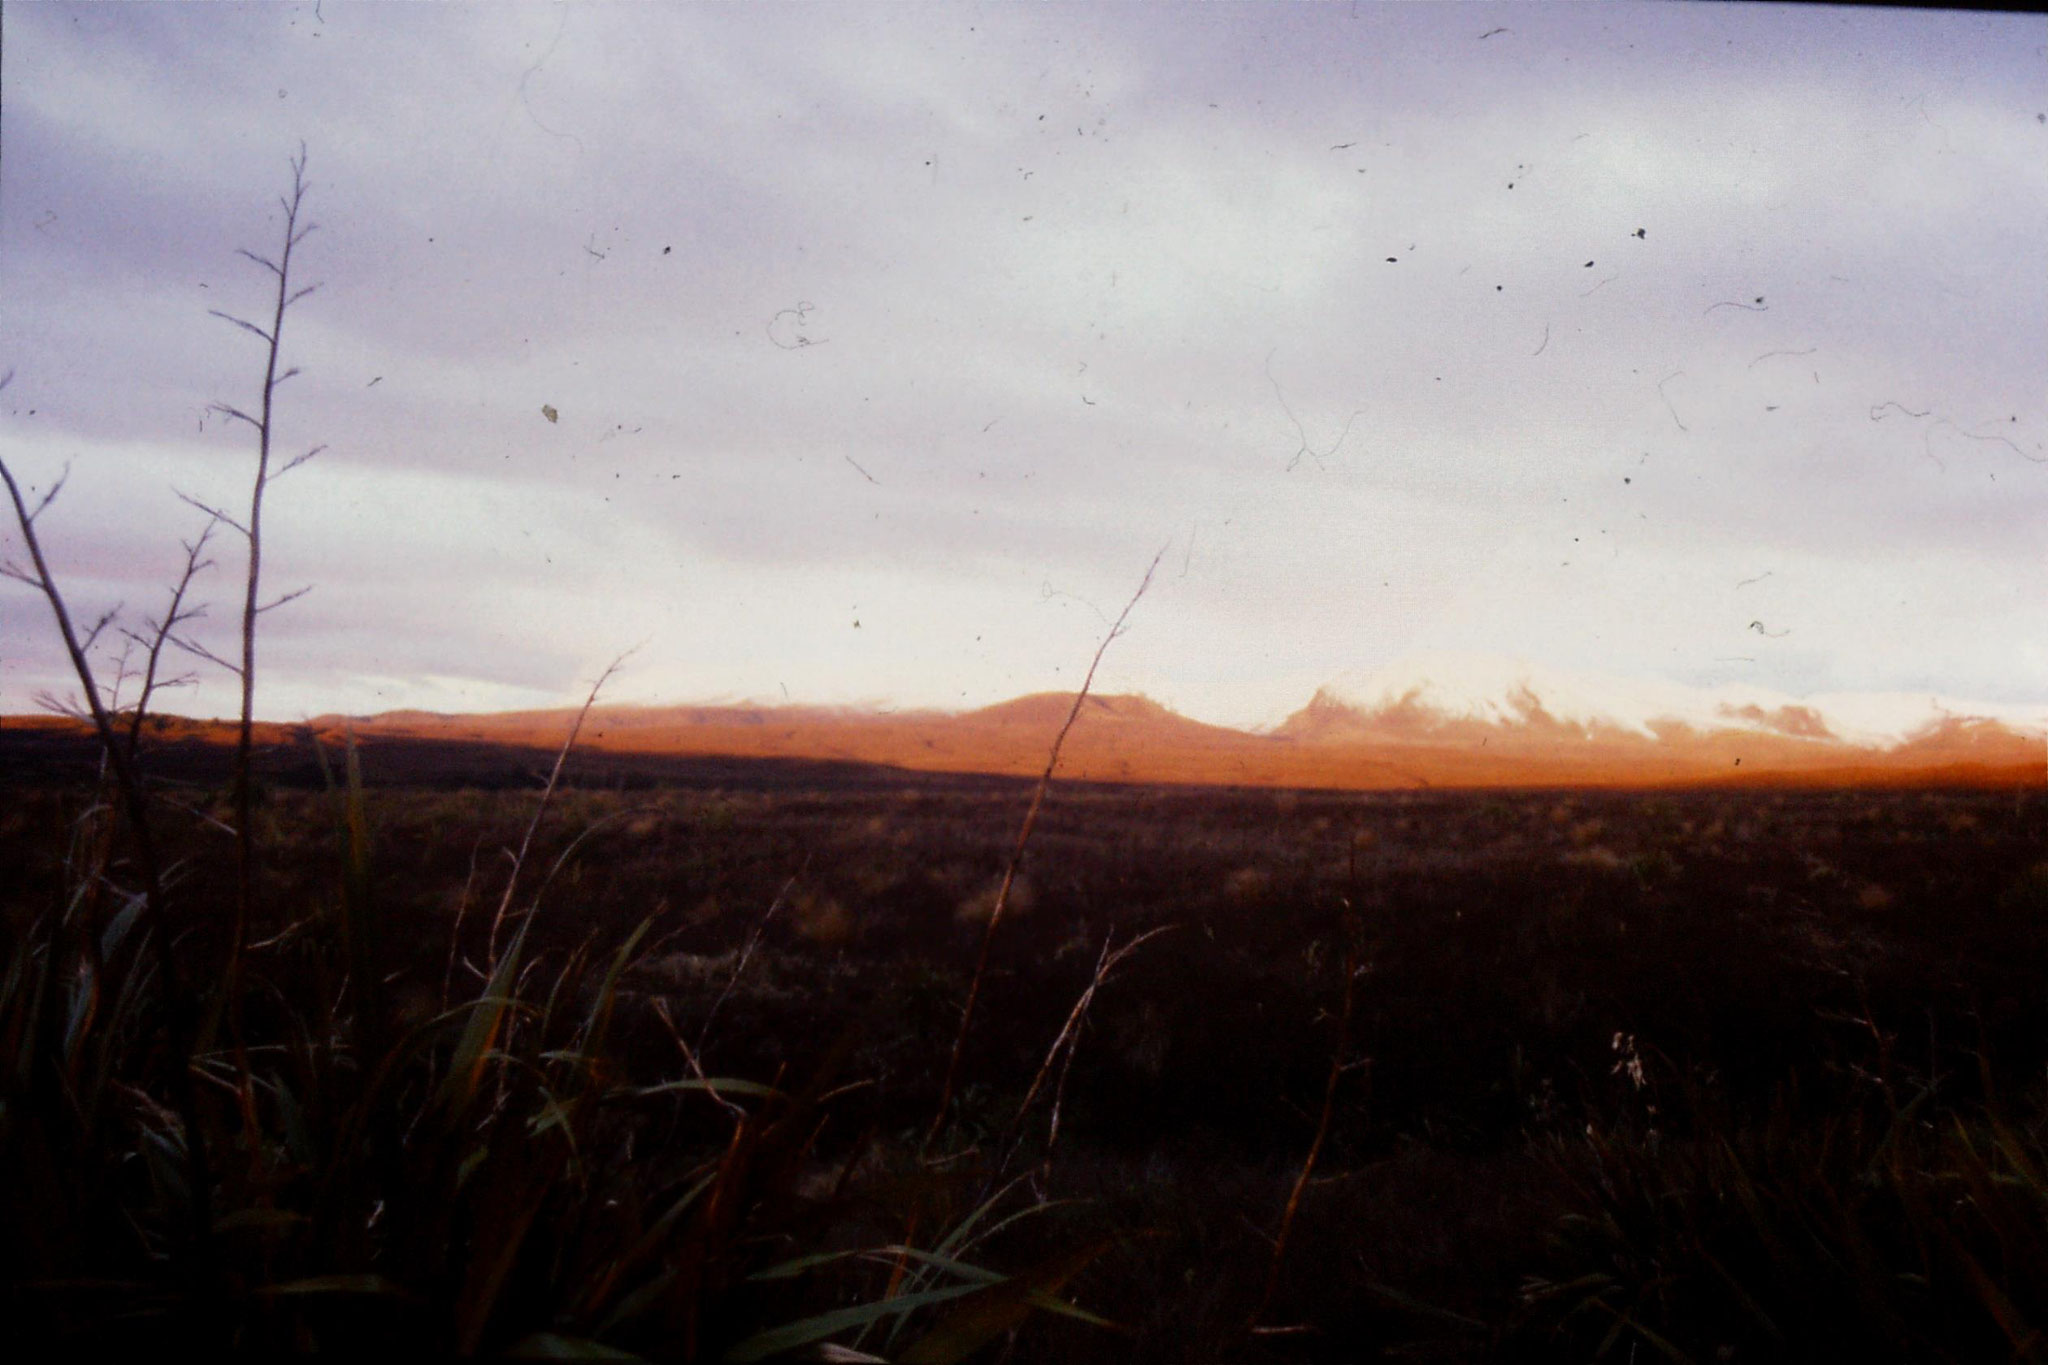 29/8/1990: 7: sunset on Mt Ngauruhoe